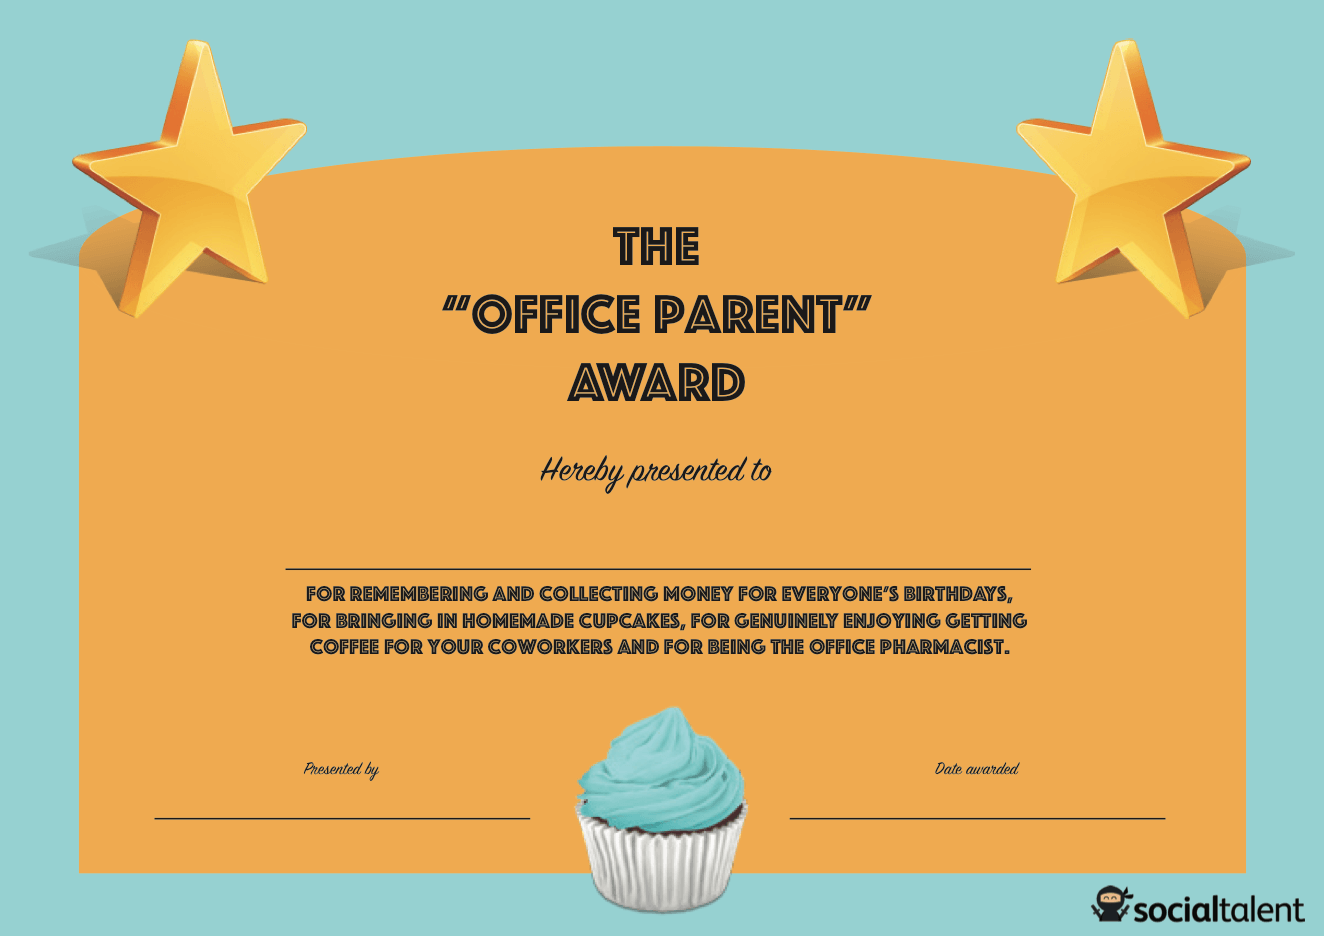 20 Hilarious Office Awards to Embarrass Your Colleagues | SocialTalent